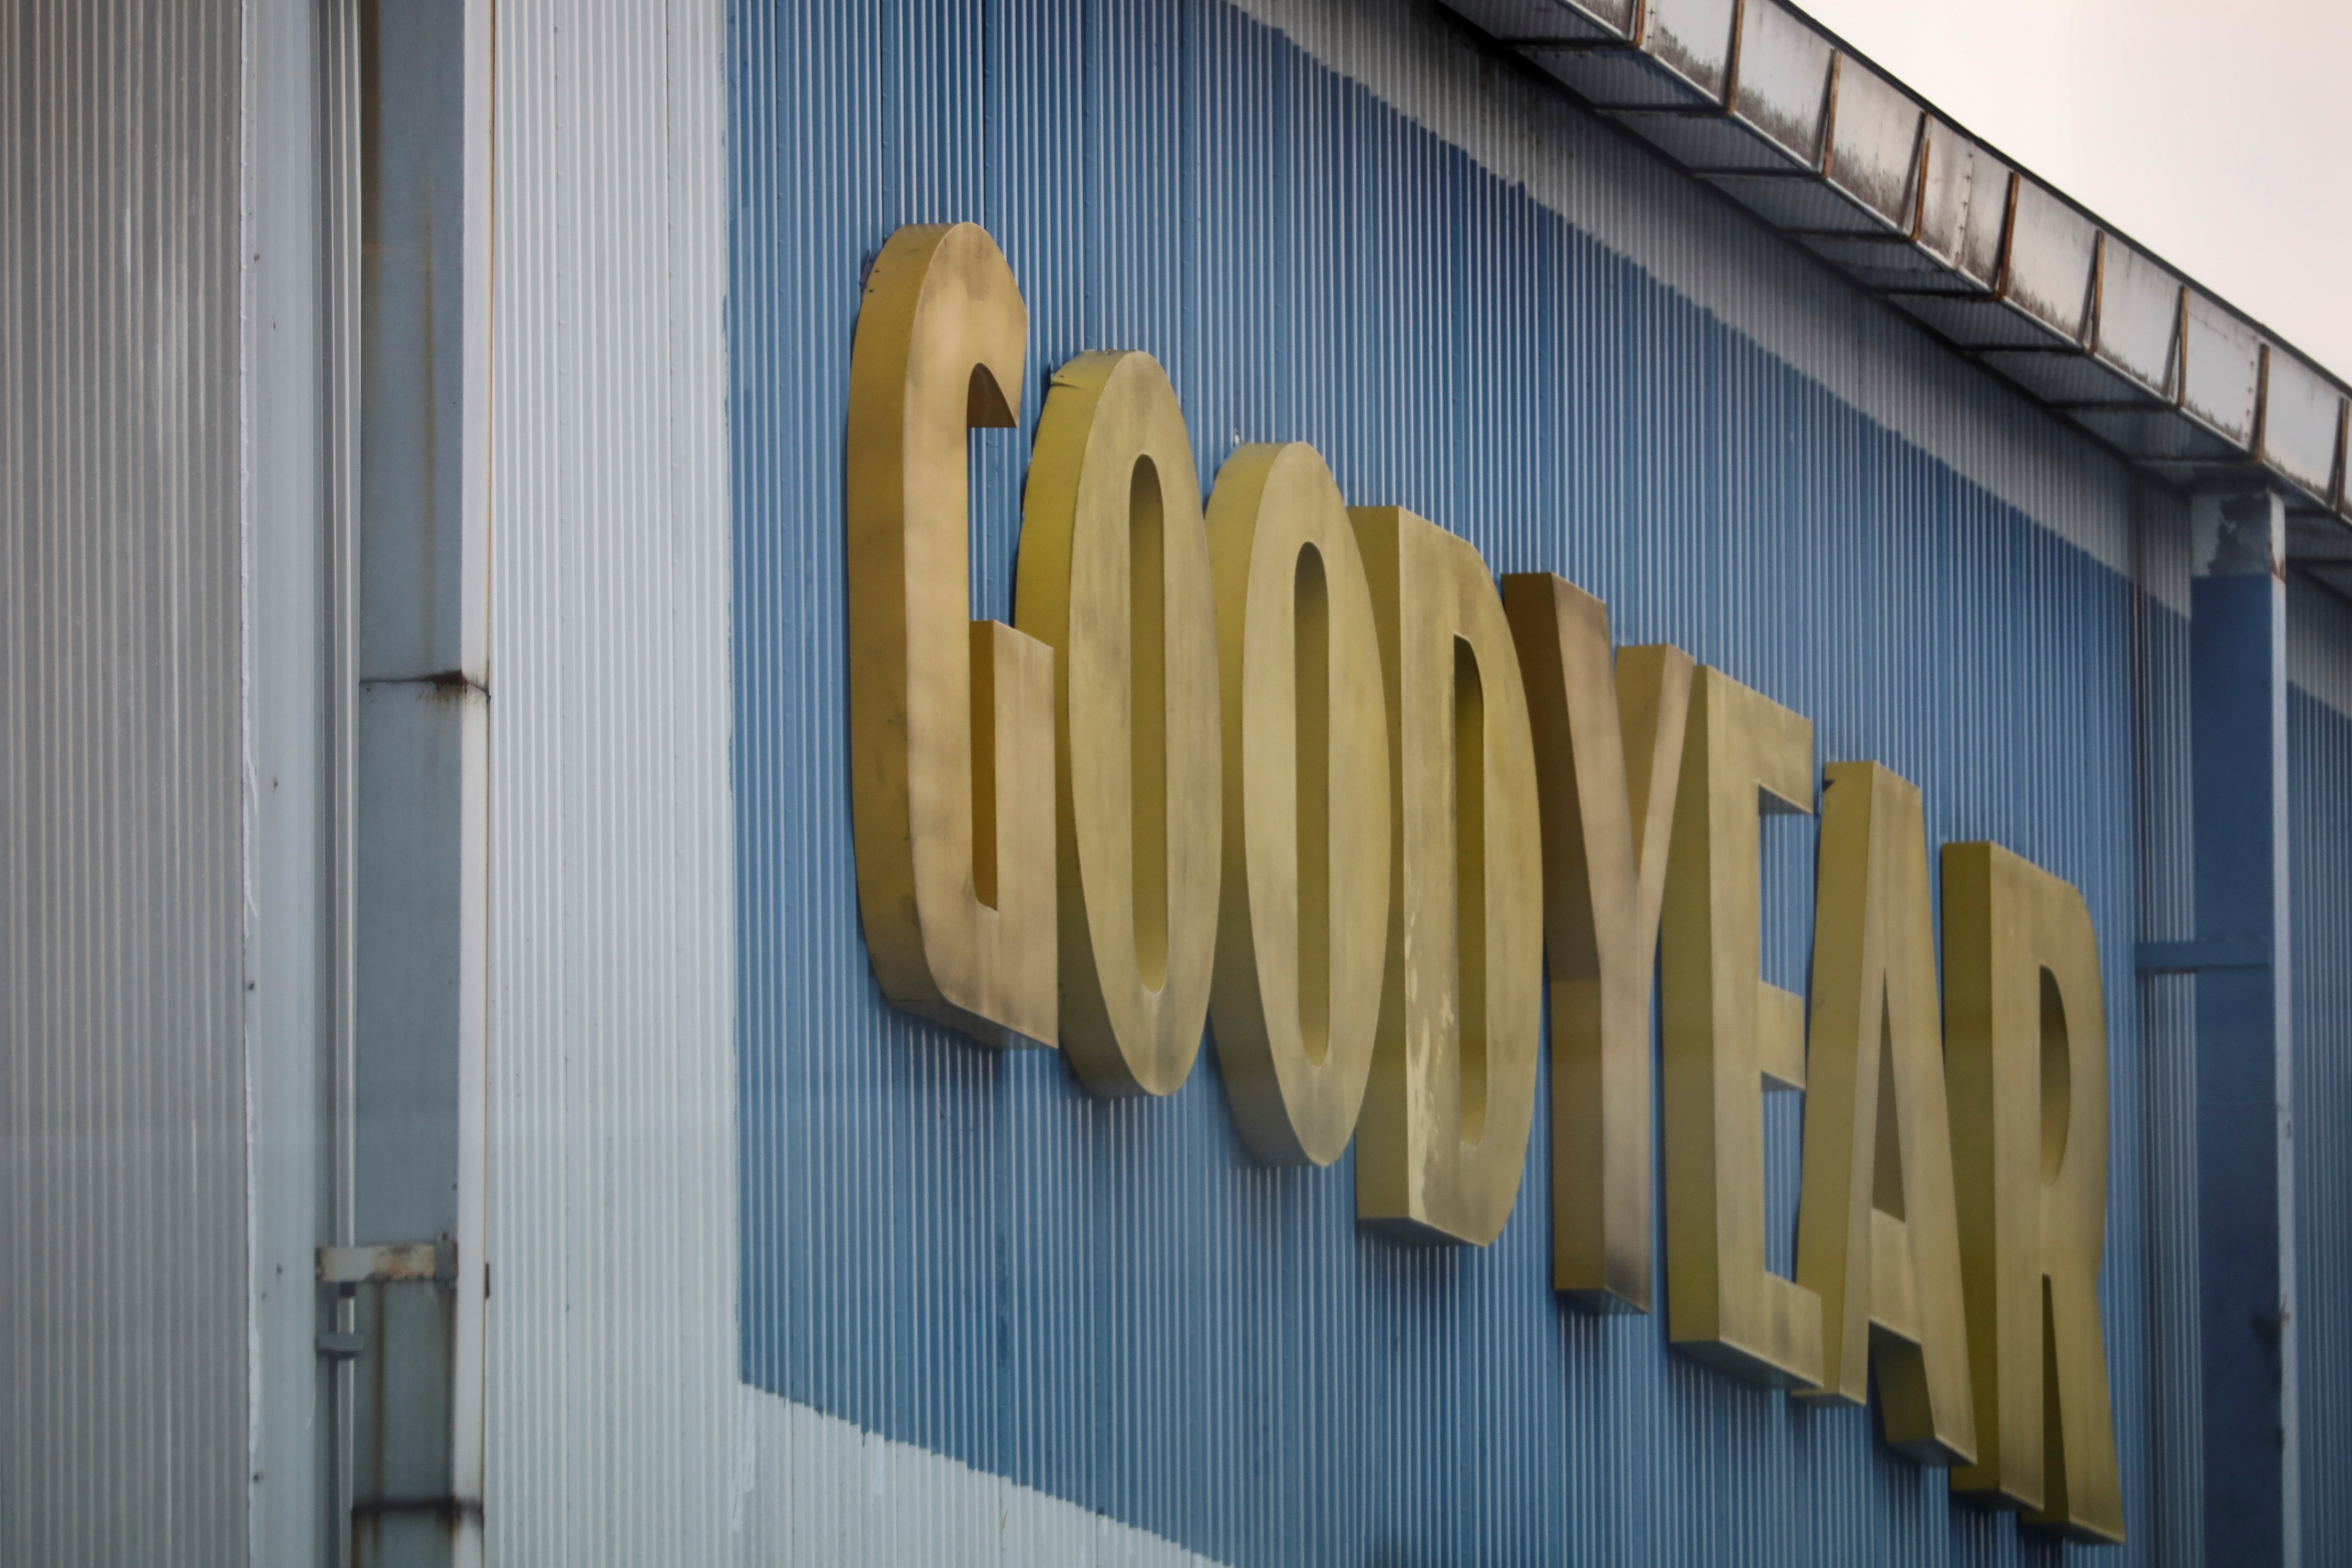 A logo of Goodyear is pictured at it's factory in Shah Alam, Malaysia May 6, 2021. REUTERS/Lim Huey Teng